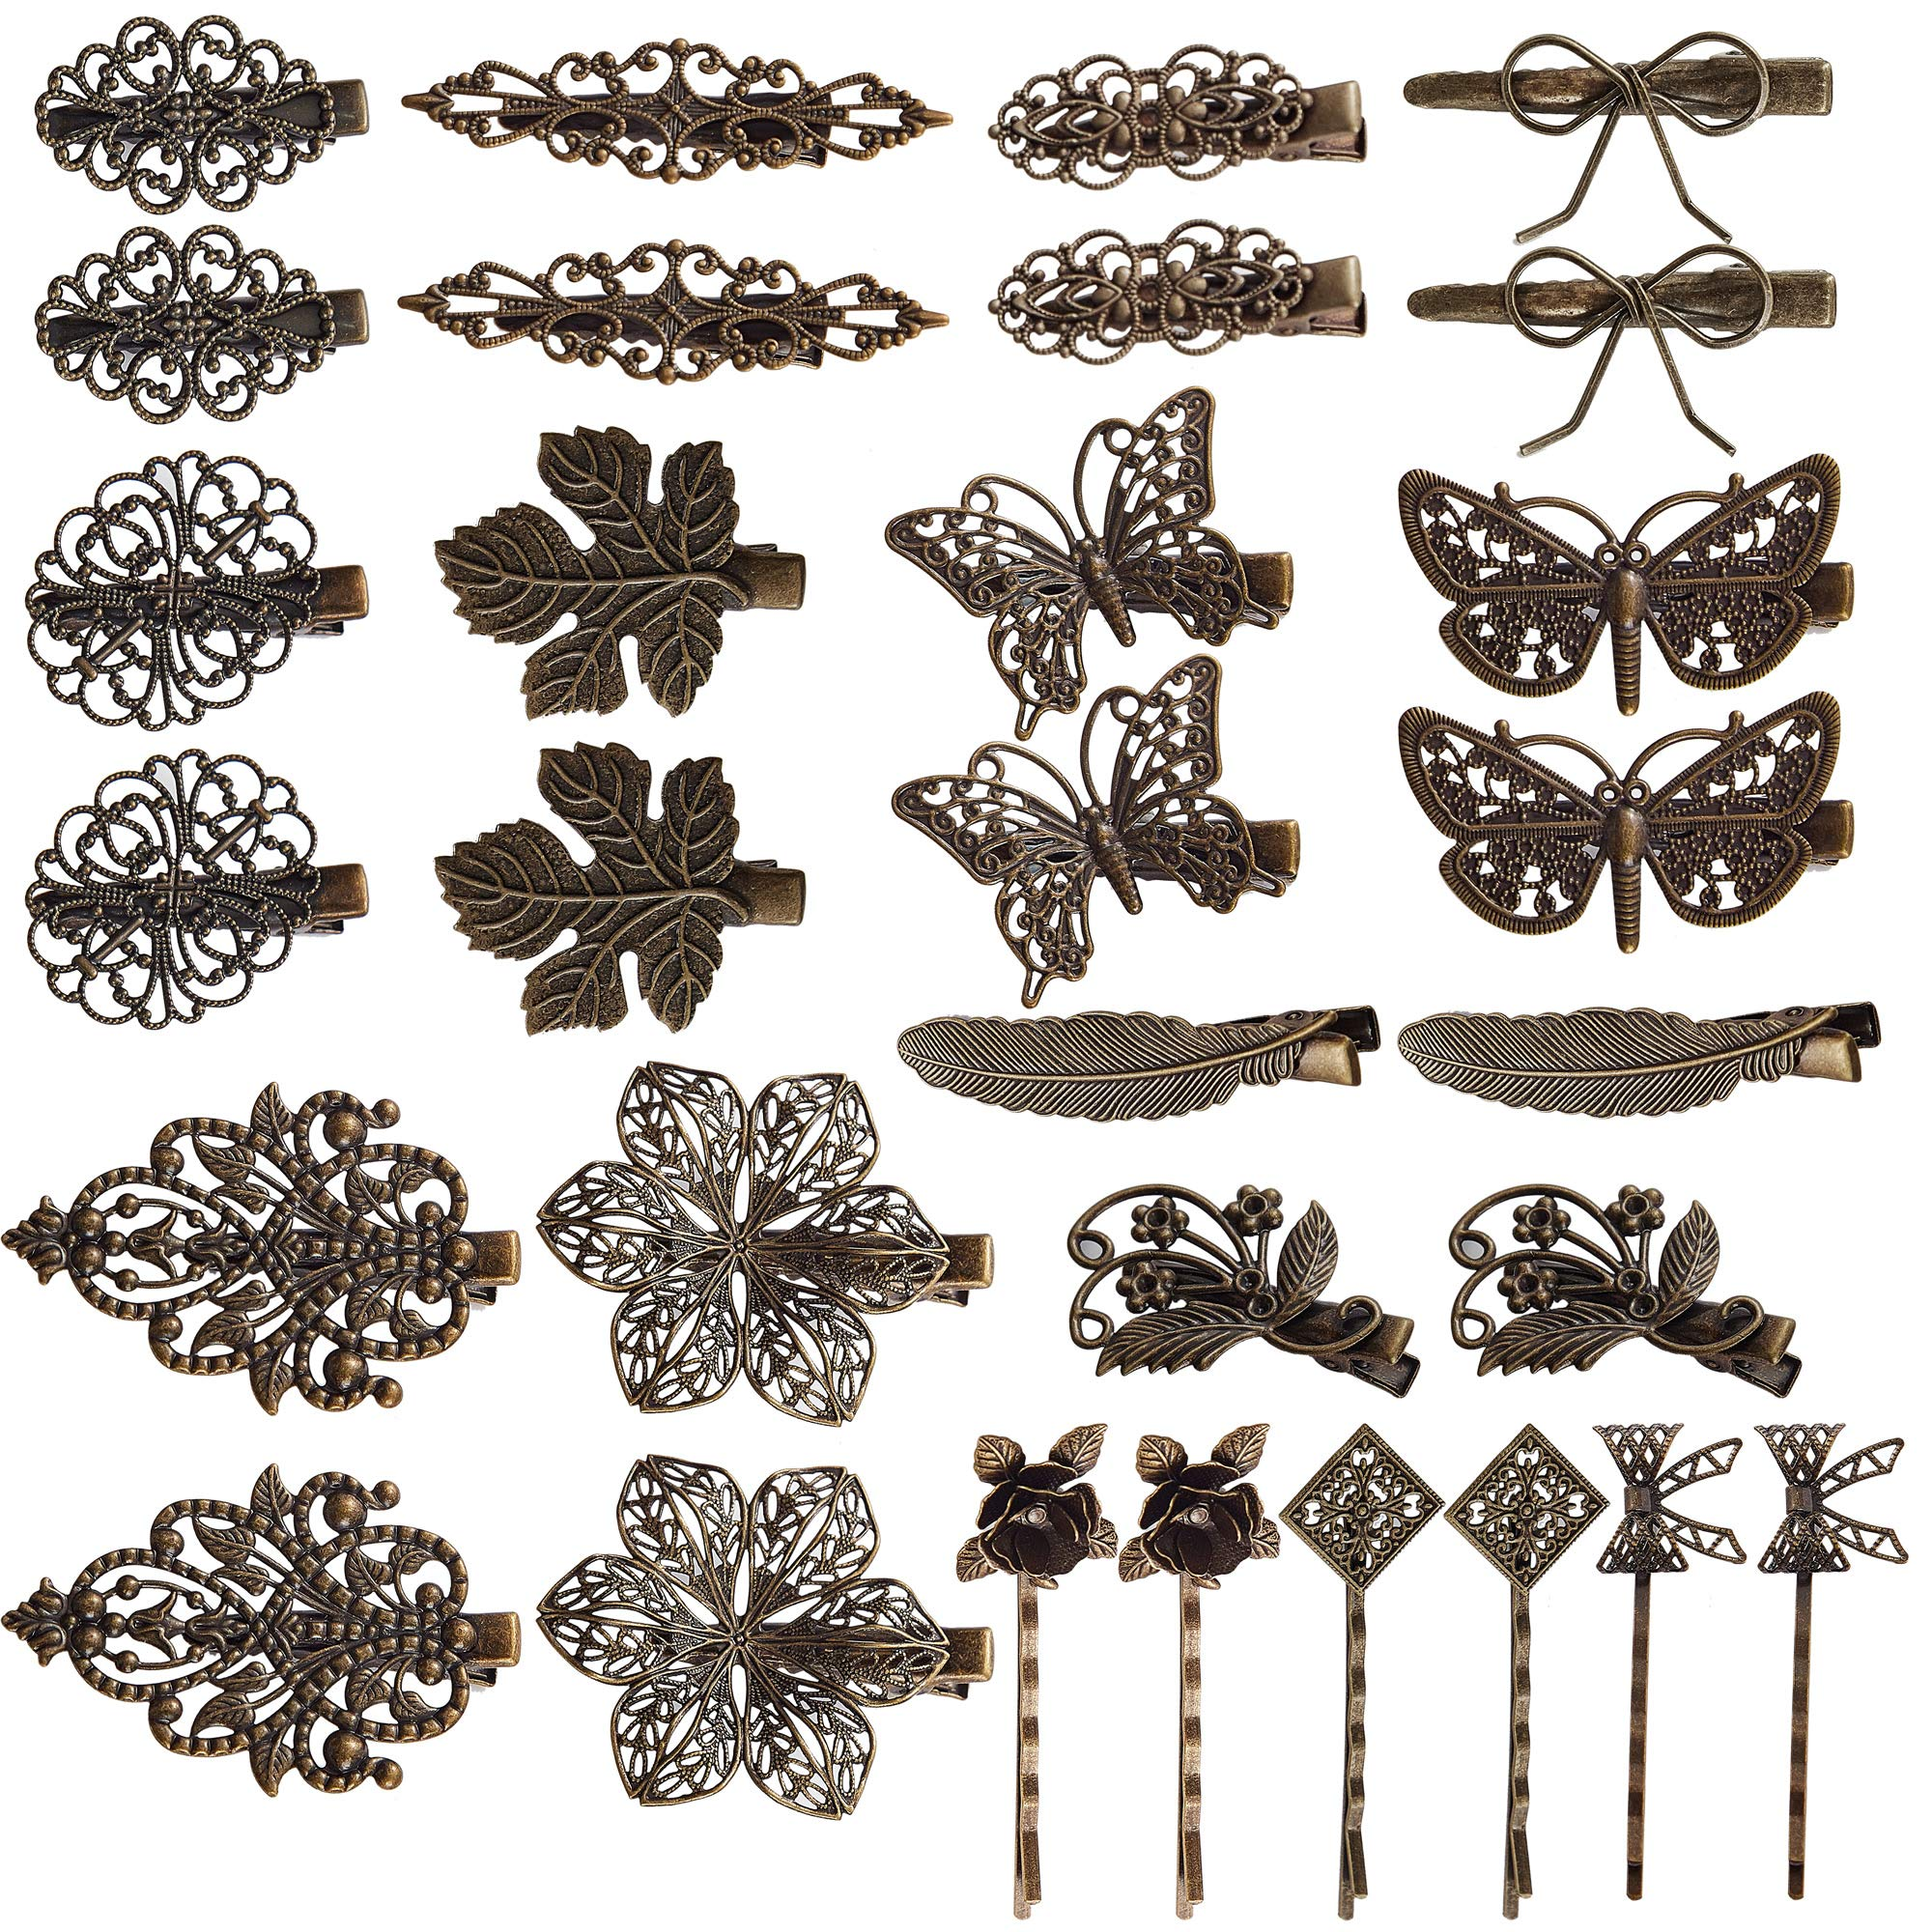 inSowni 30 Pack/15 Pairs Bronze Metal Retro Vintage Alligator Hair Clips Barrettes Bobby Pins Leaf Flower Butterfly Accessories for Women Girls